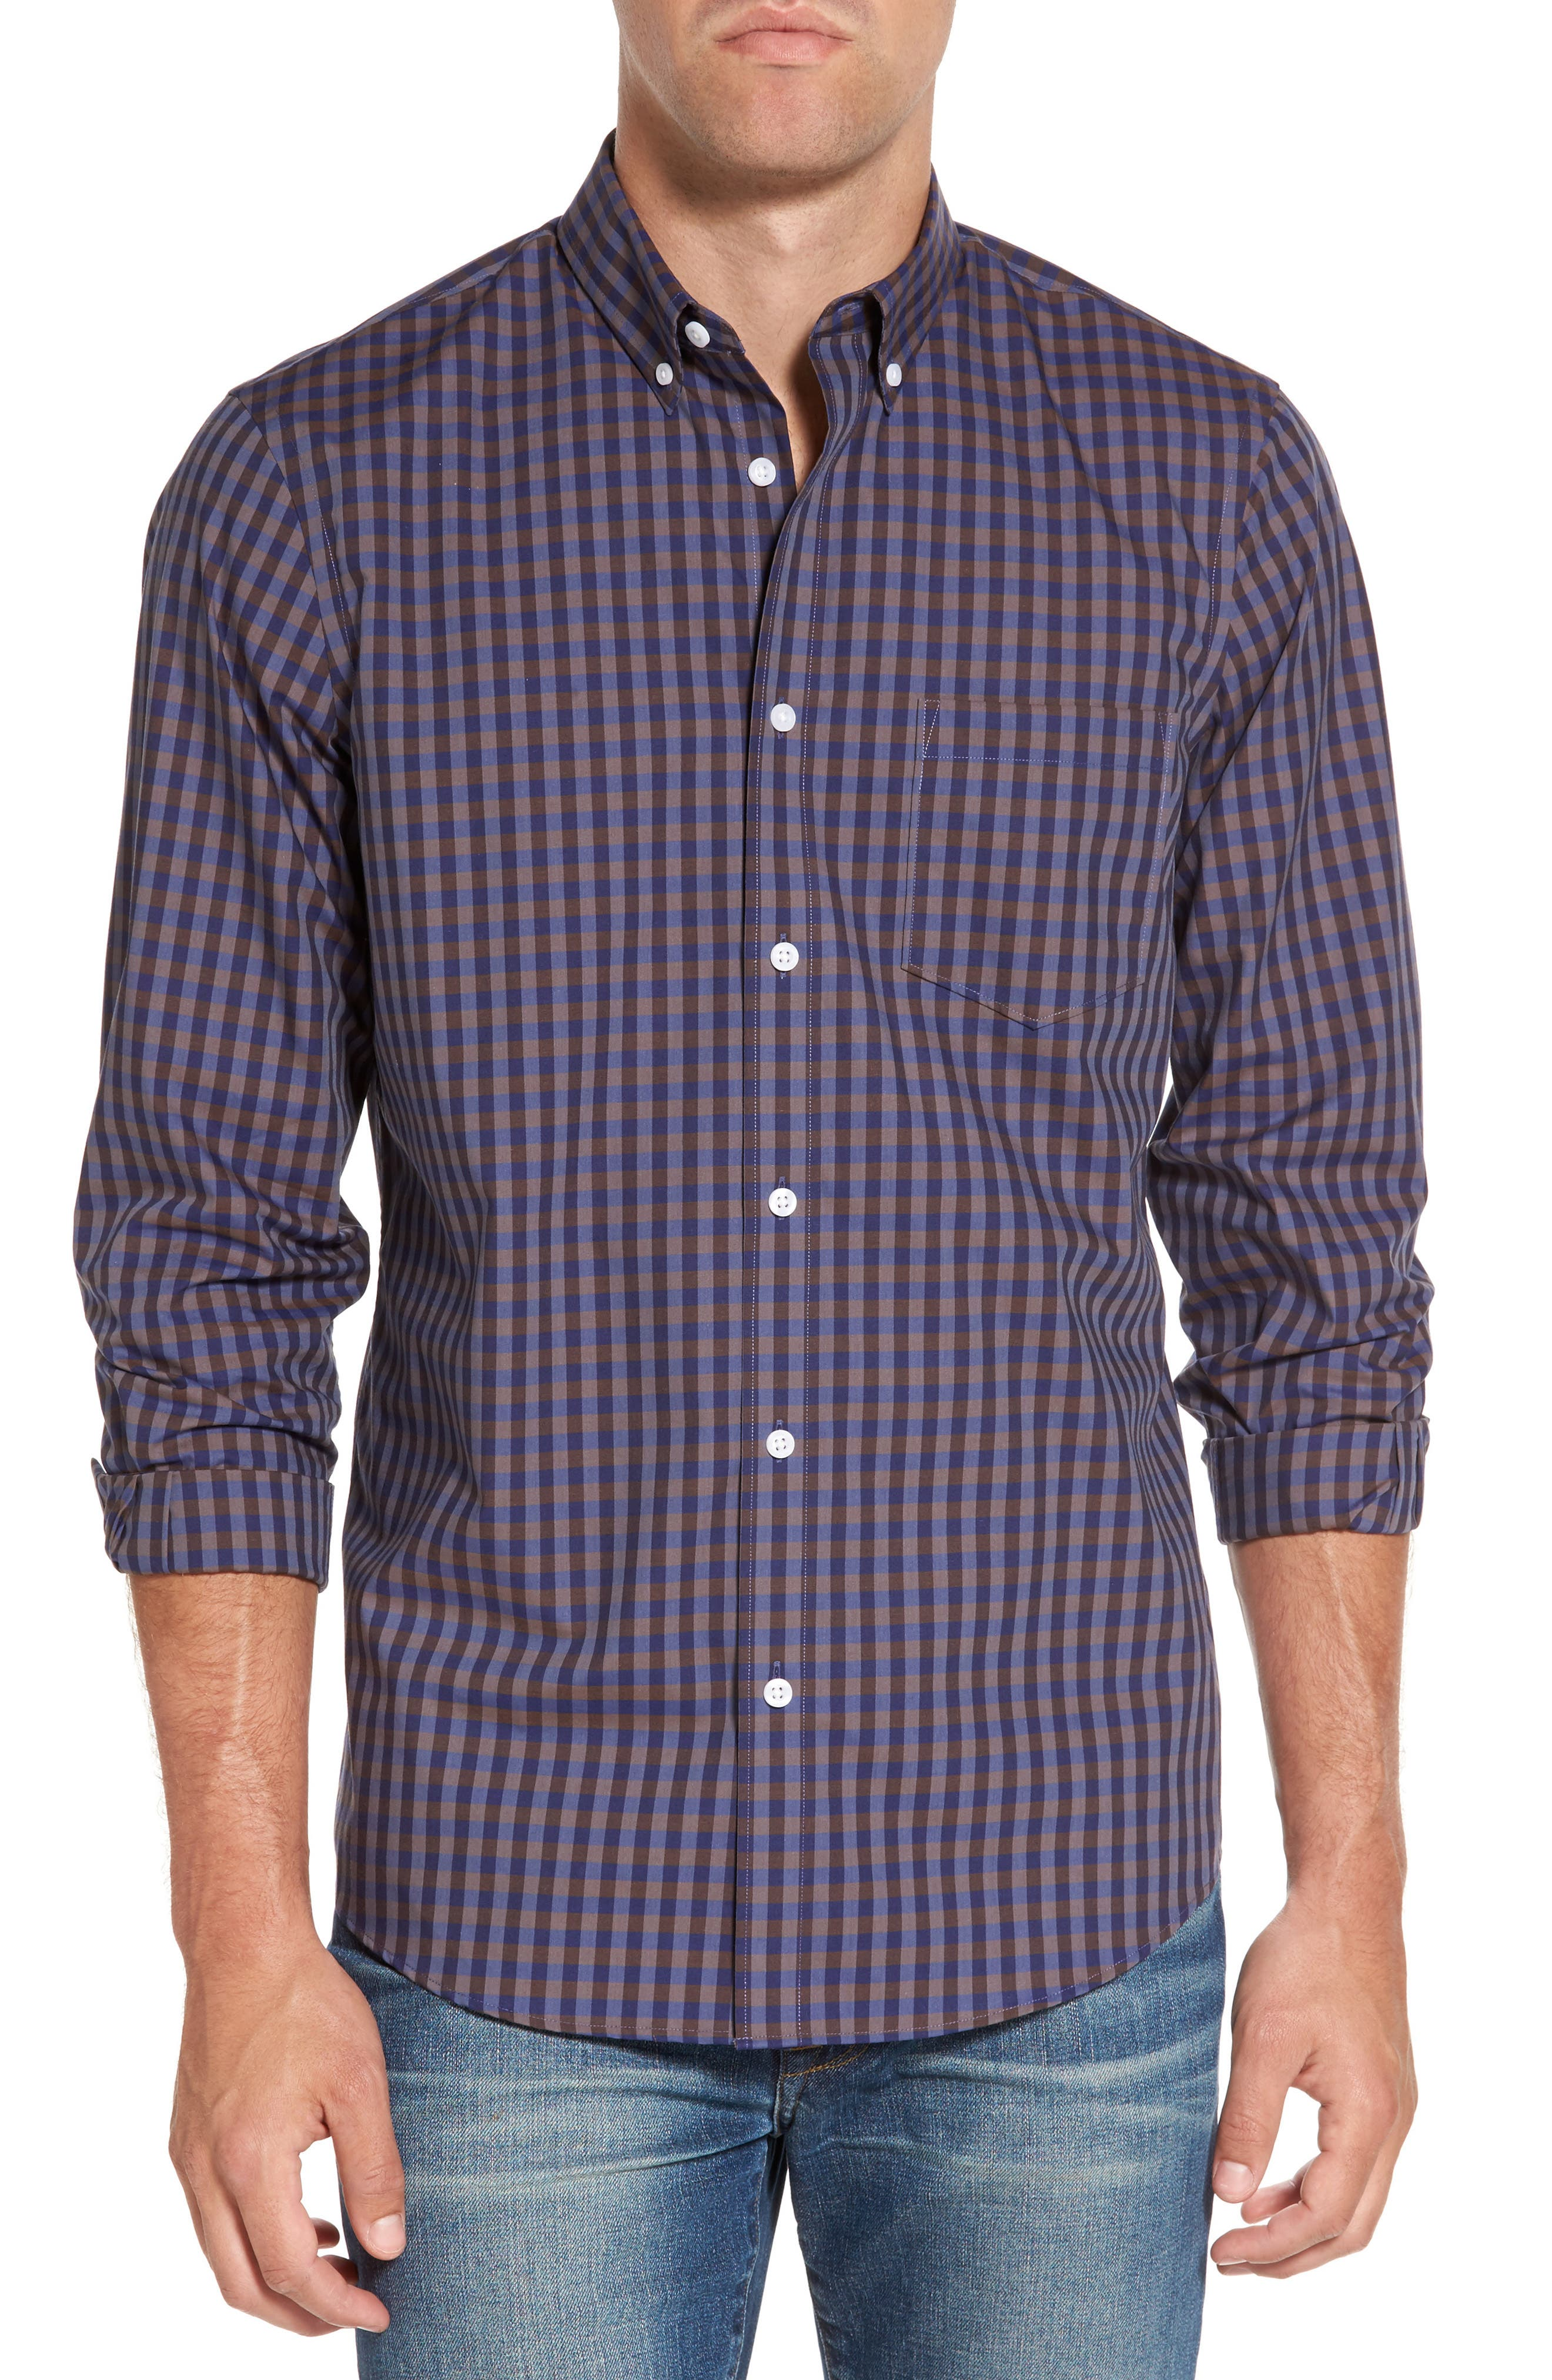 Alternate Image 1 Selected - Nordstrom Men's Shop Regular Fit Non-Iron Check Sport Shirt (Tall)